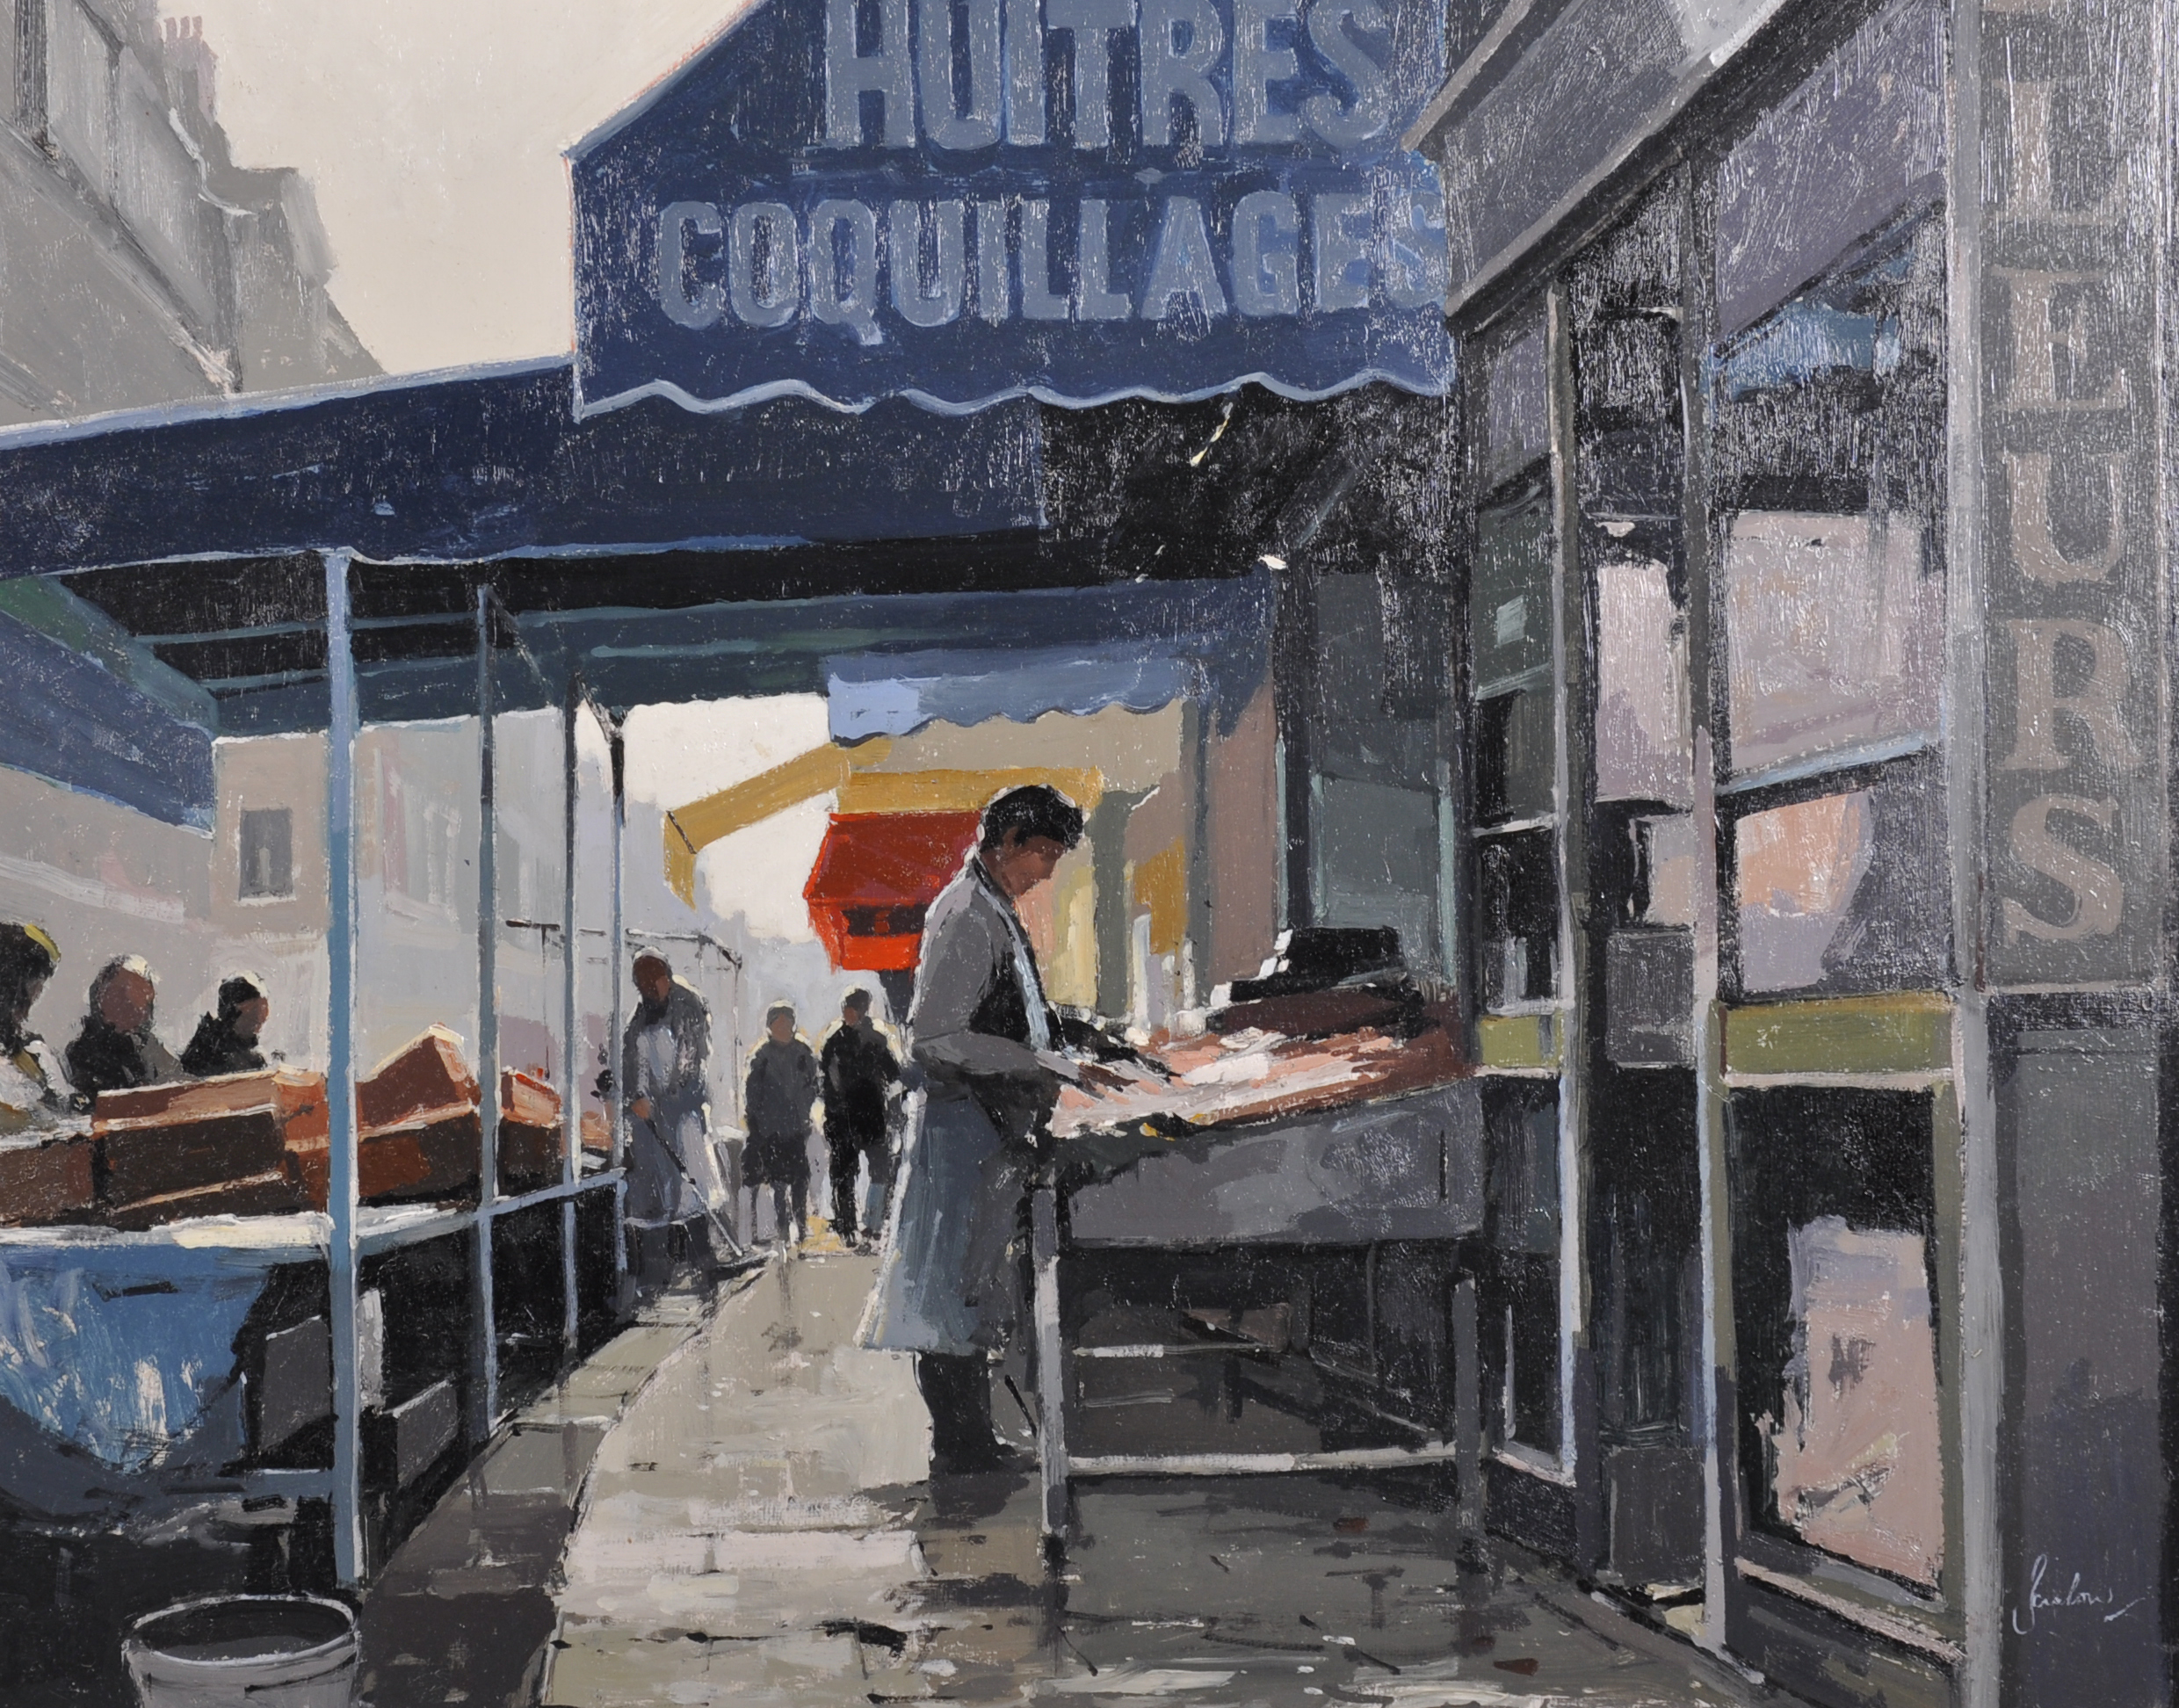 """Jeremy Barlow (1945- ) British. """"Huitres, Coquillages""""/Auctioneers and Valuers"""